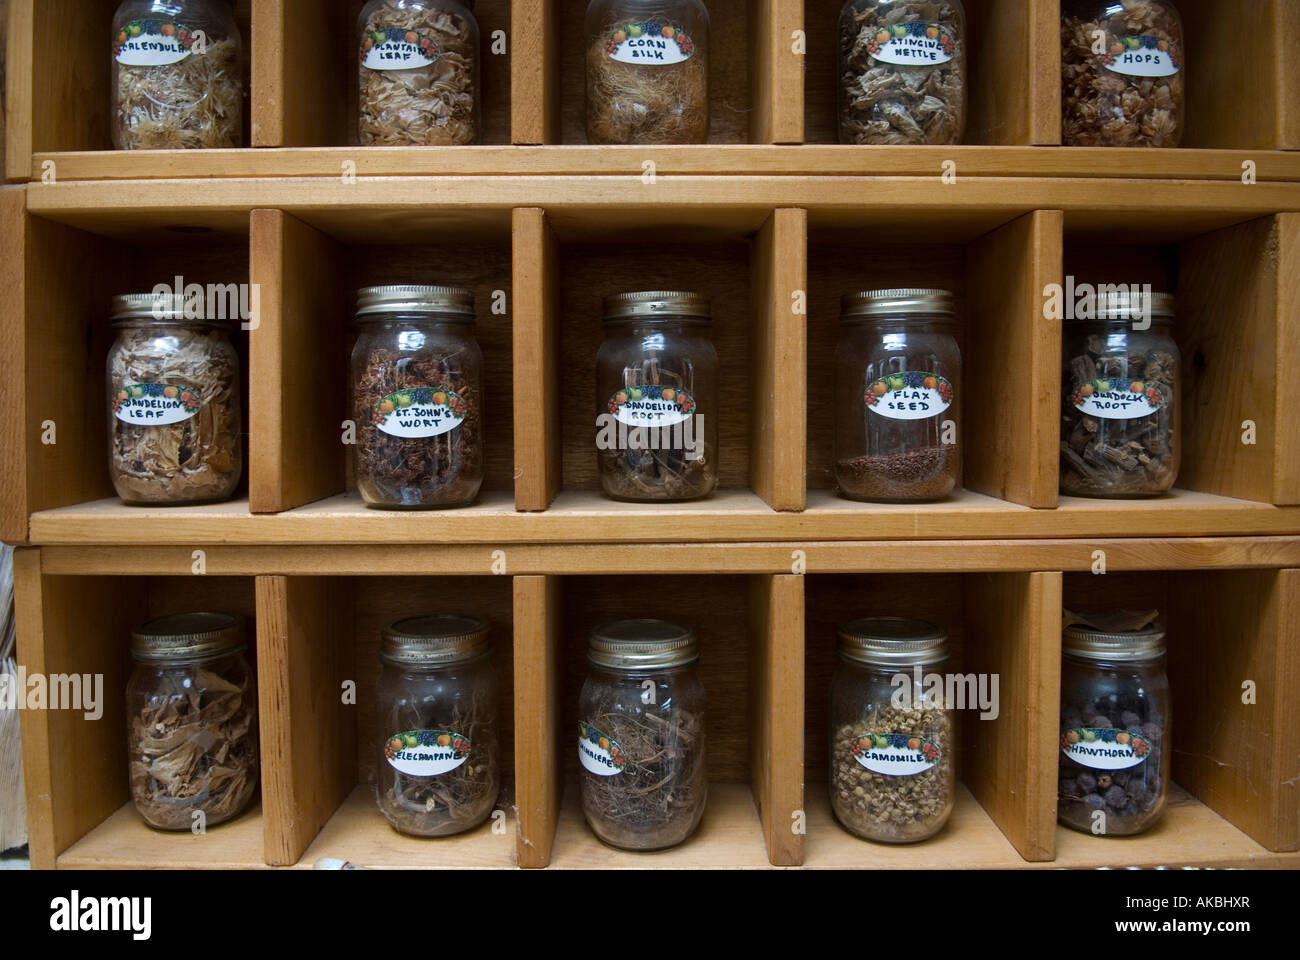 Spice rack with glass jars and labeled spice jars stock image